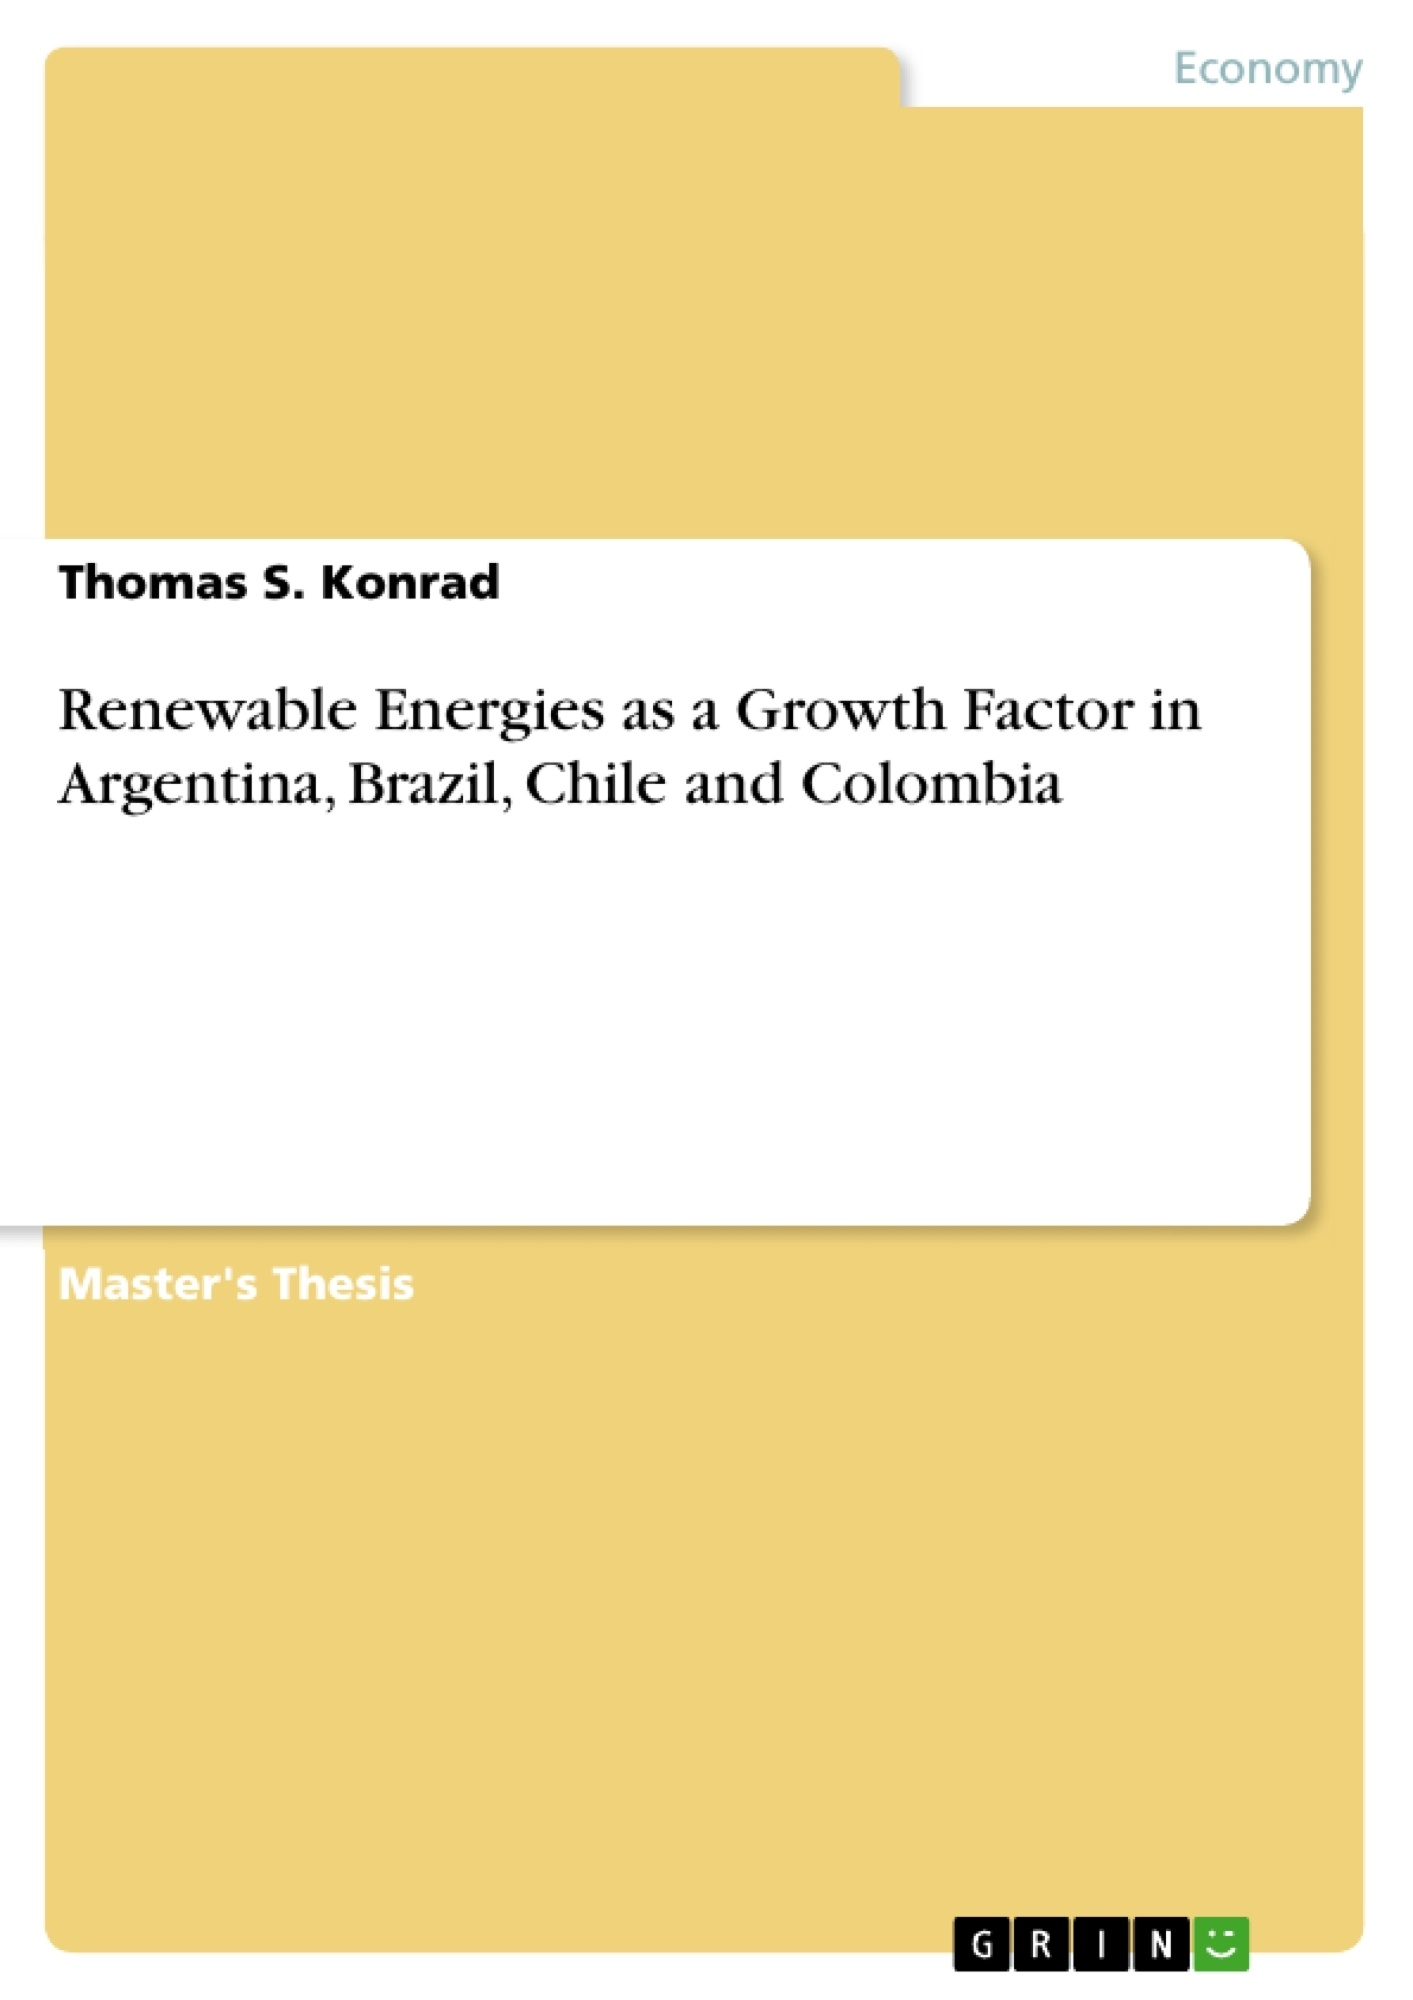 Title: Renewable Energies as a Growth Factor in Argentina, Brazil, Chile and Colombia